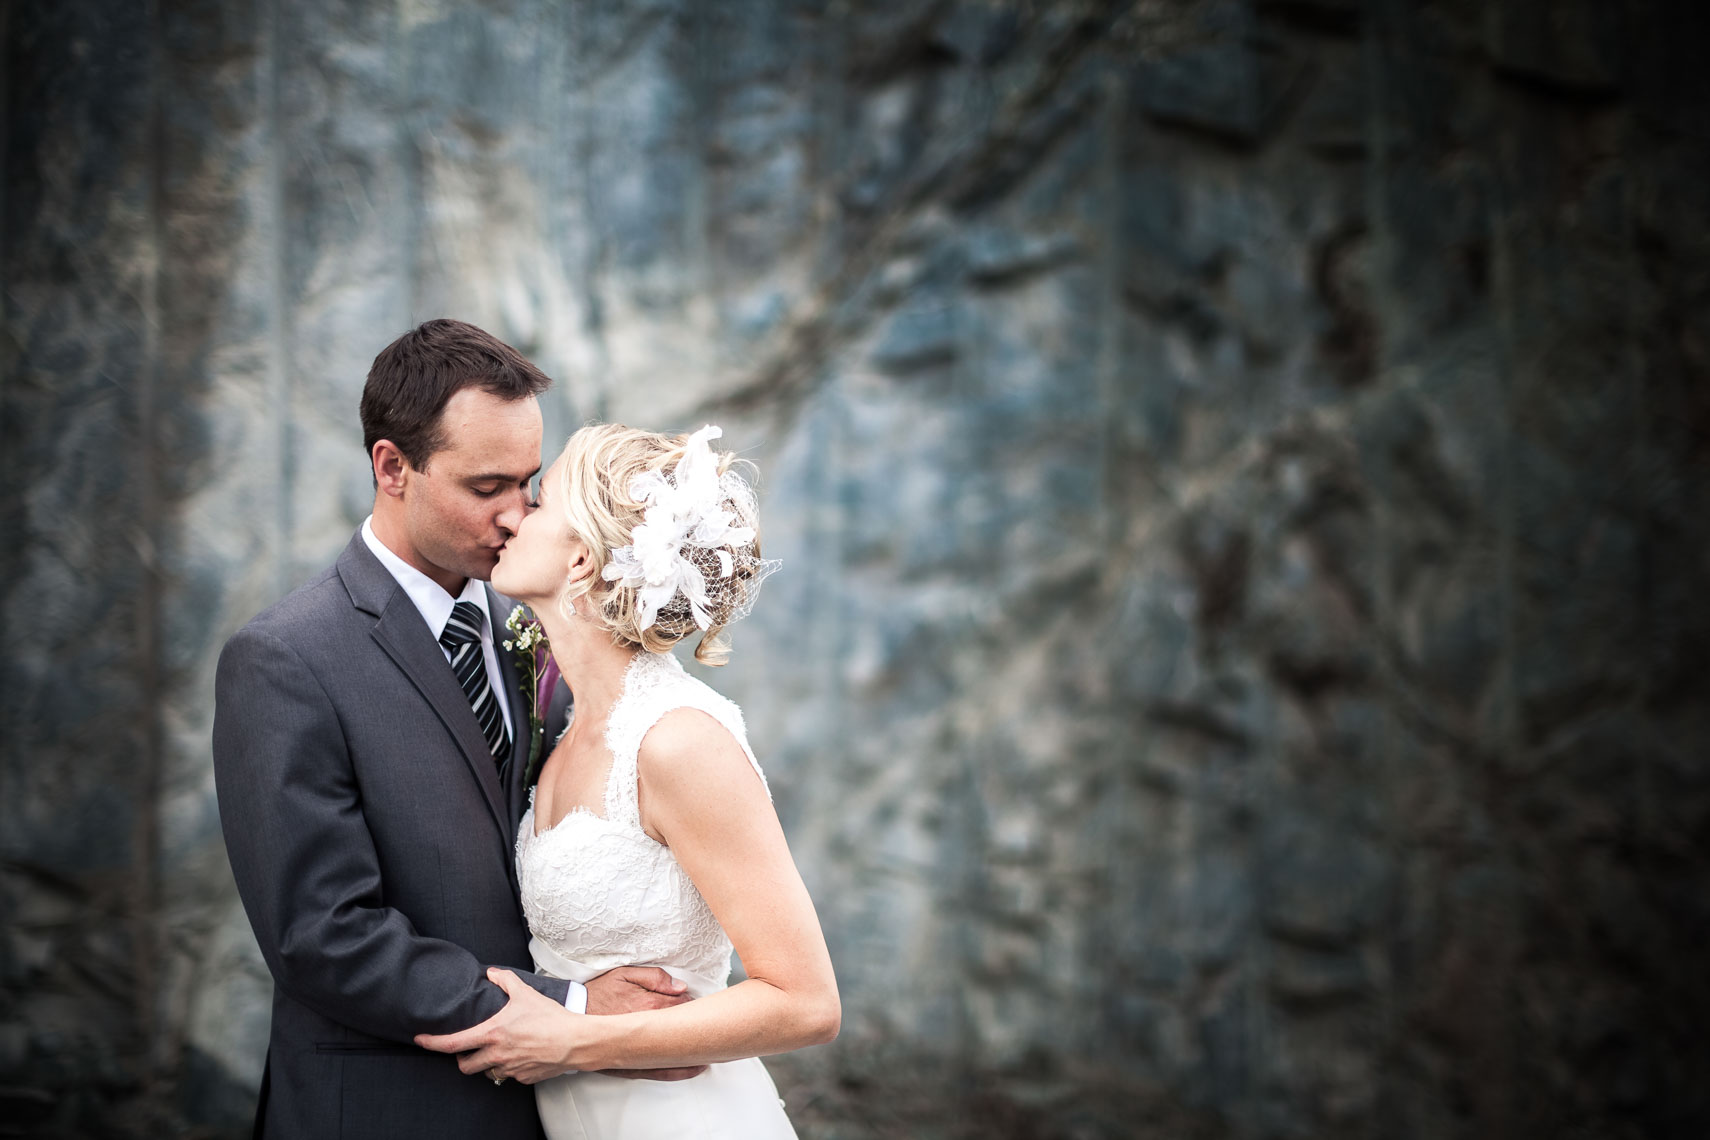 Bride and groom kiss in front of rock wall before ceremony at big sky golf wedding venue in Pemberton BC near Whistler